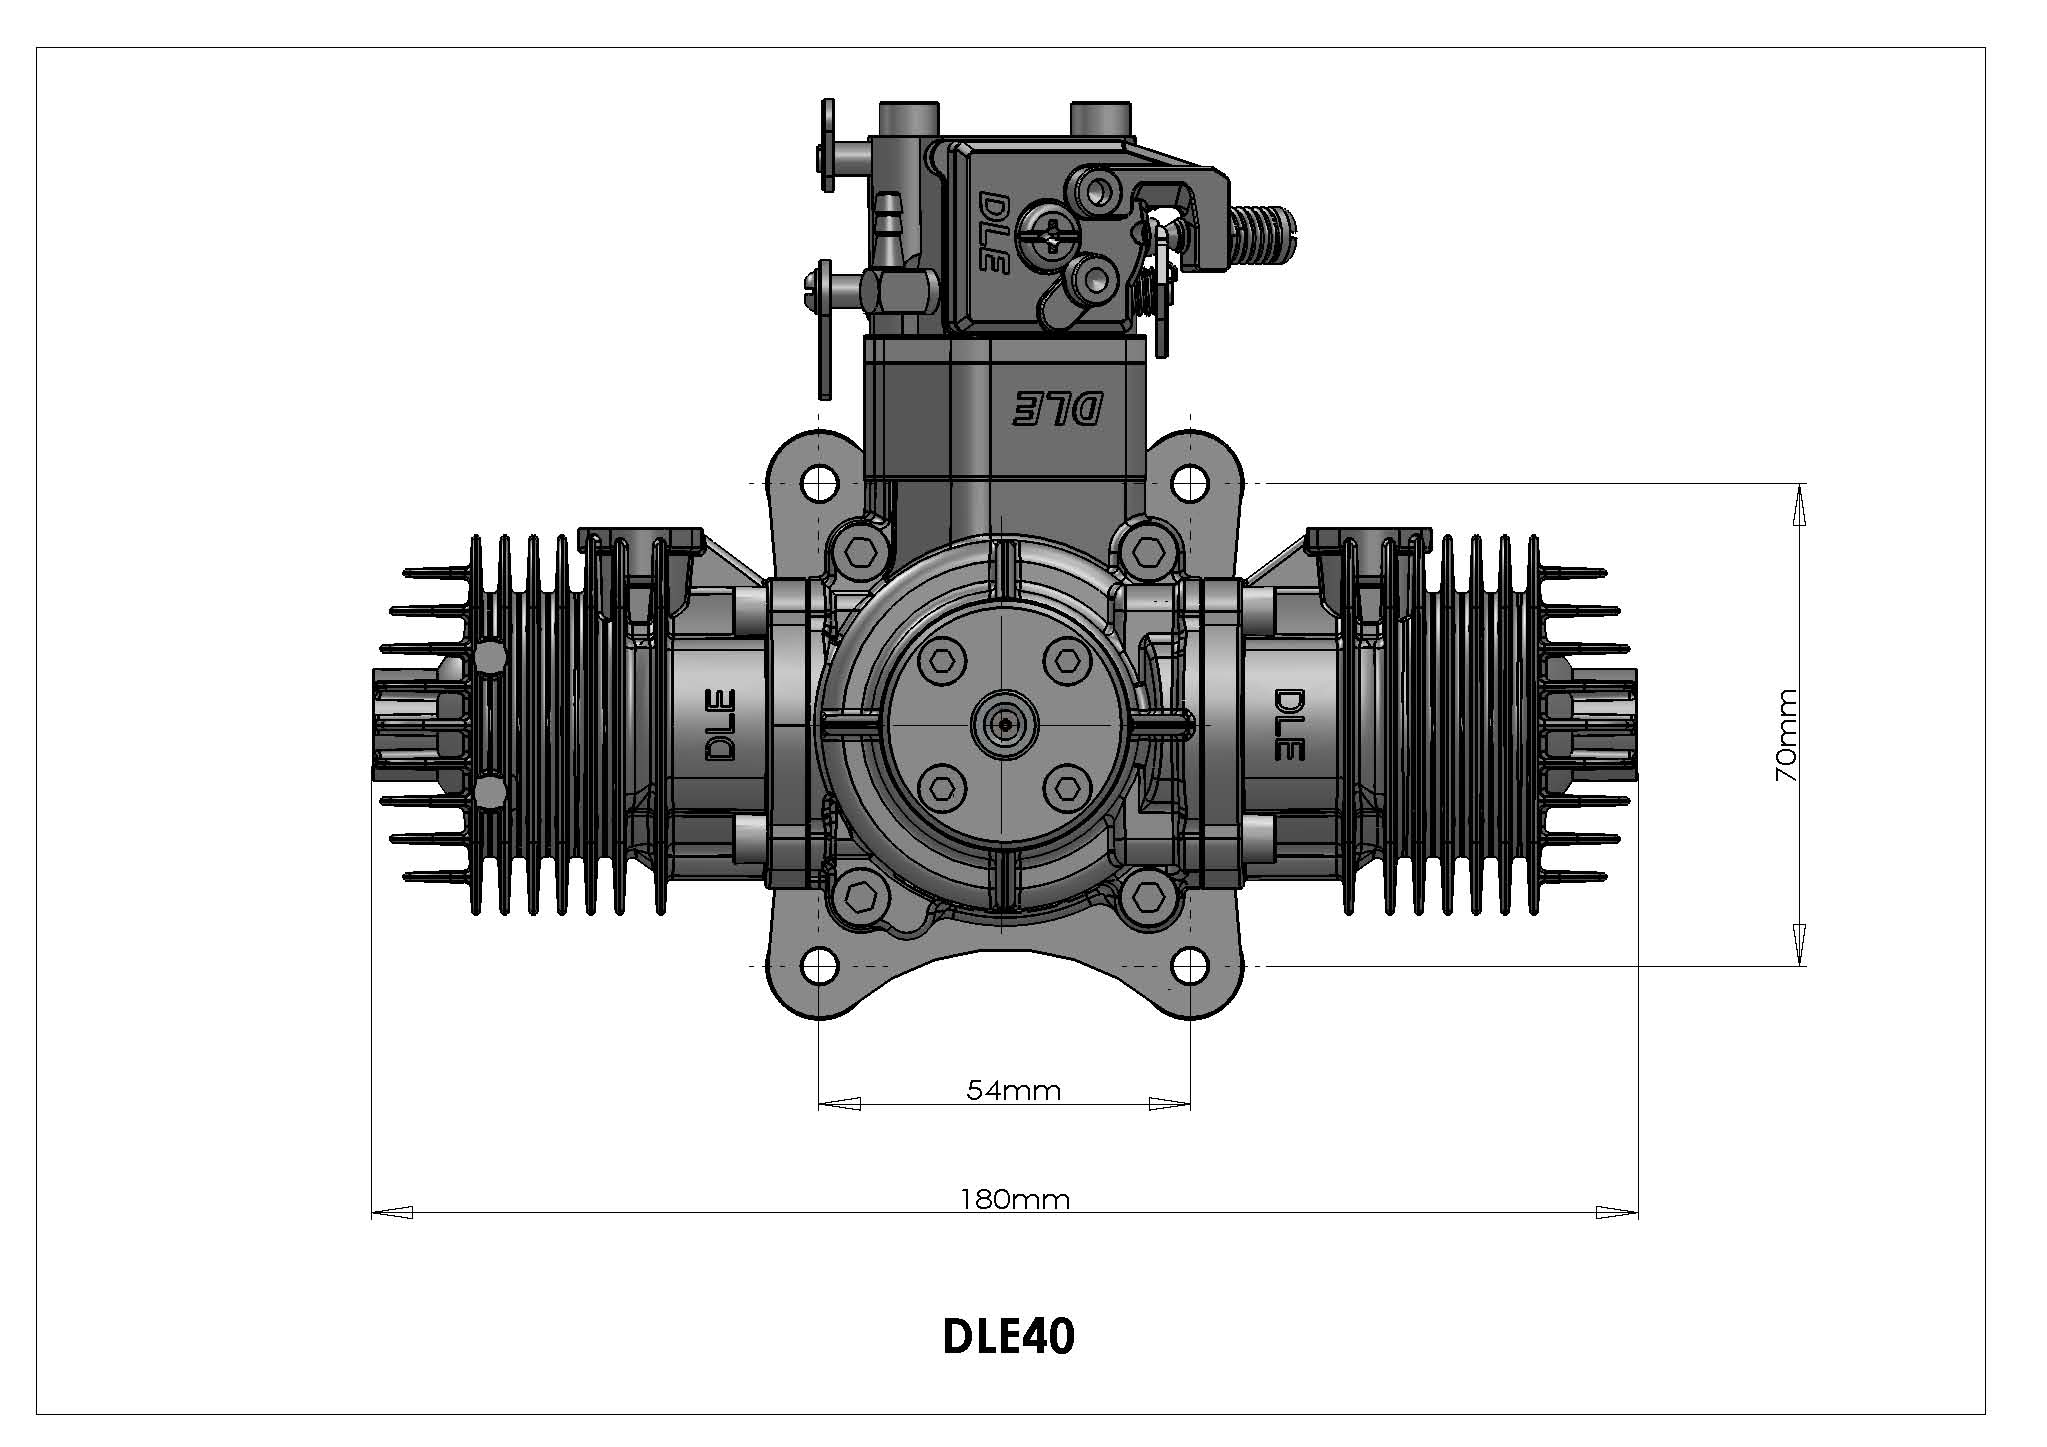 Dle Engines Rc Hobby Shop Diagram Of A Model Airplane Engine In Stock Dle40 Twin Two Stroke Specifications Number Dleg0040 Displacement 400 Cc 2